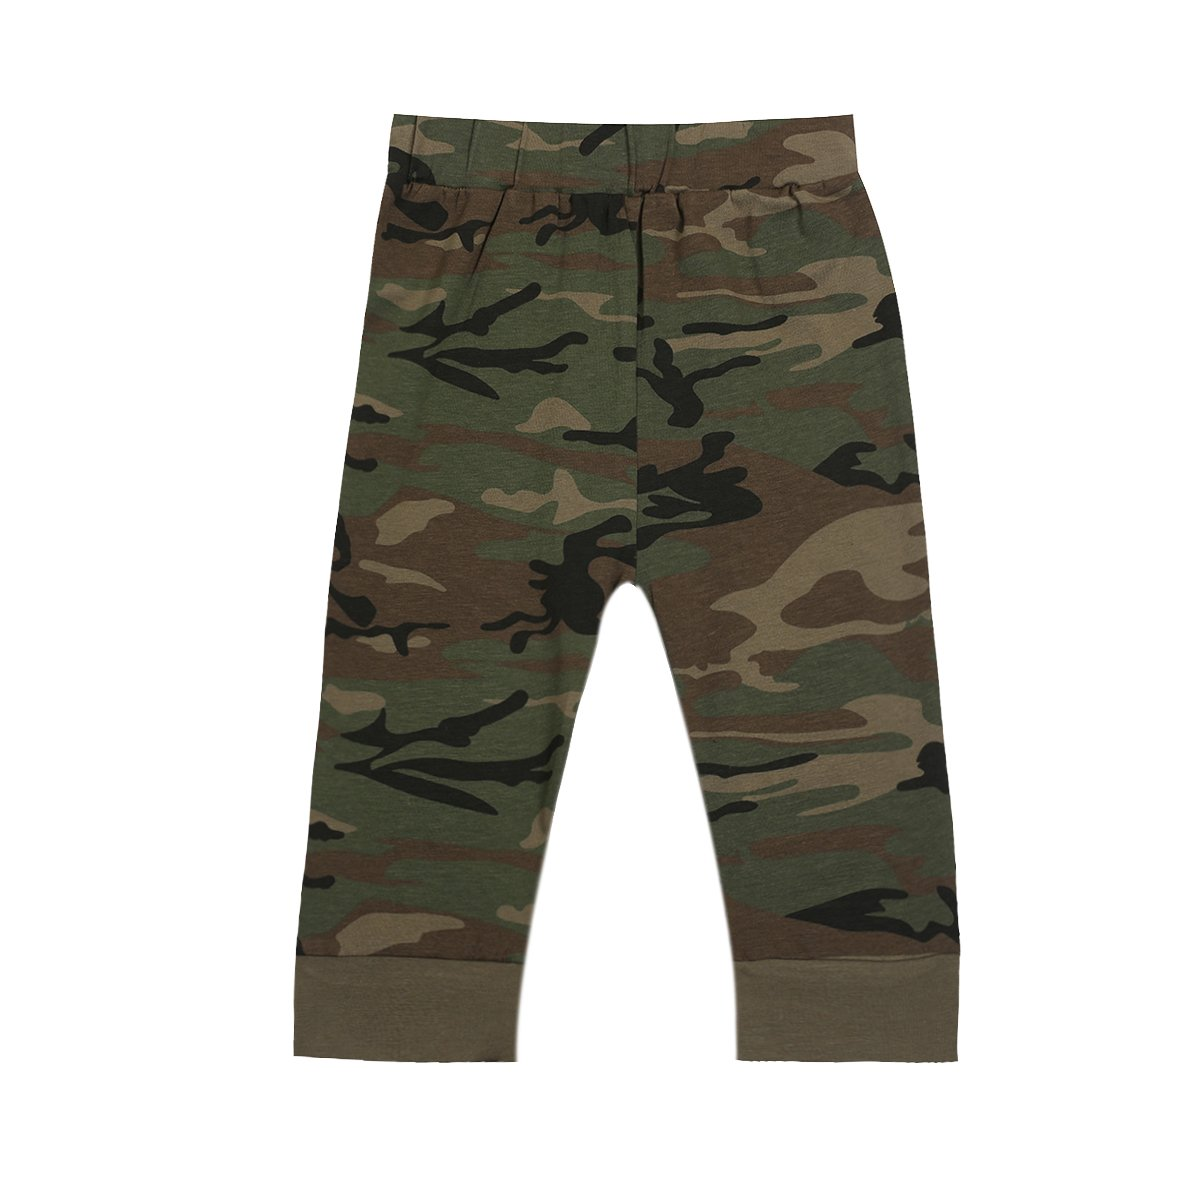 Baby Boys Girls Outfit Long Set 2PCS Camouflage Letter Print Shirt with Pants (Wild One Short Camouflage, 12-18 Months) by Truly One (Image #4)